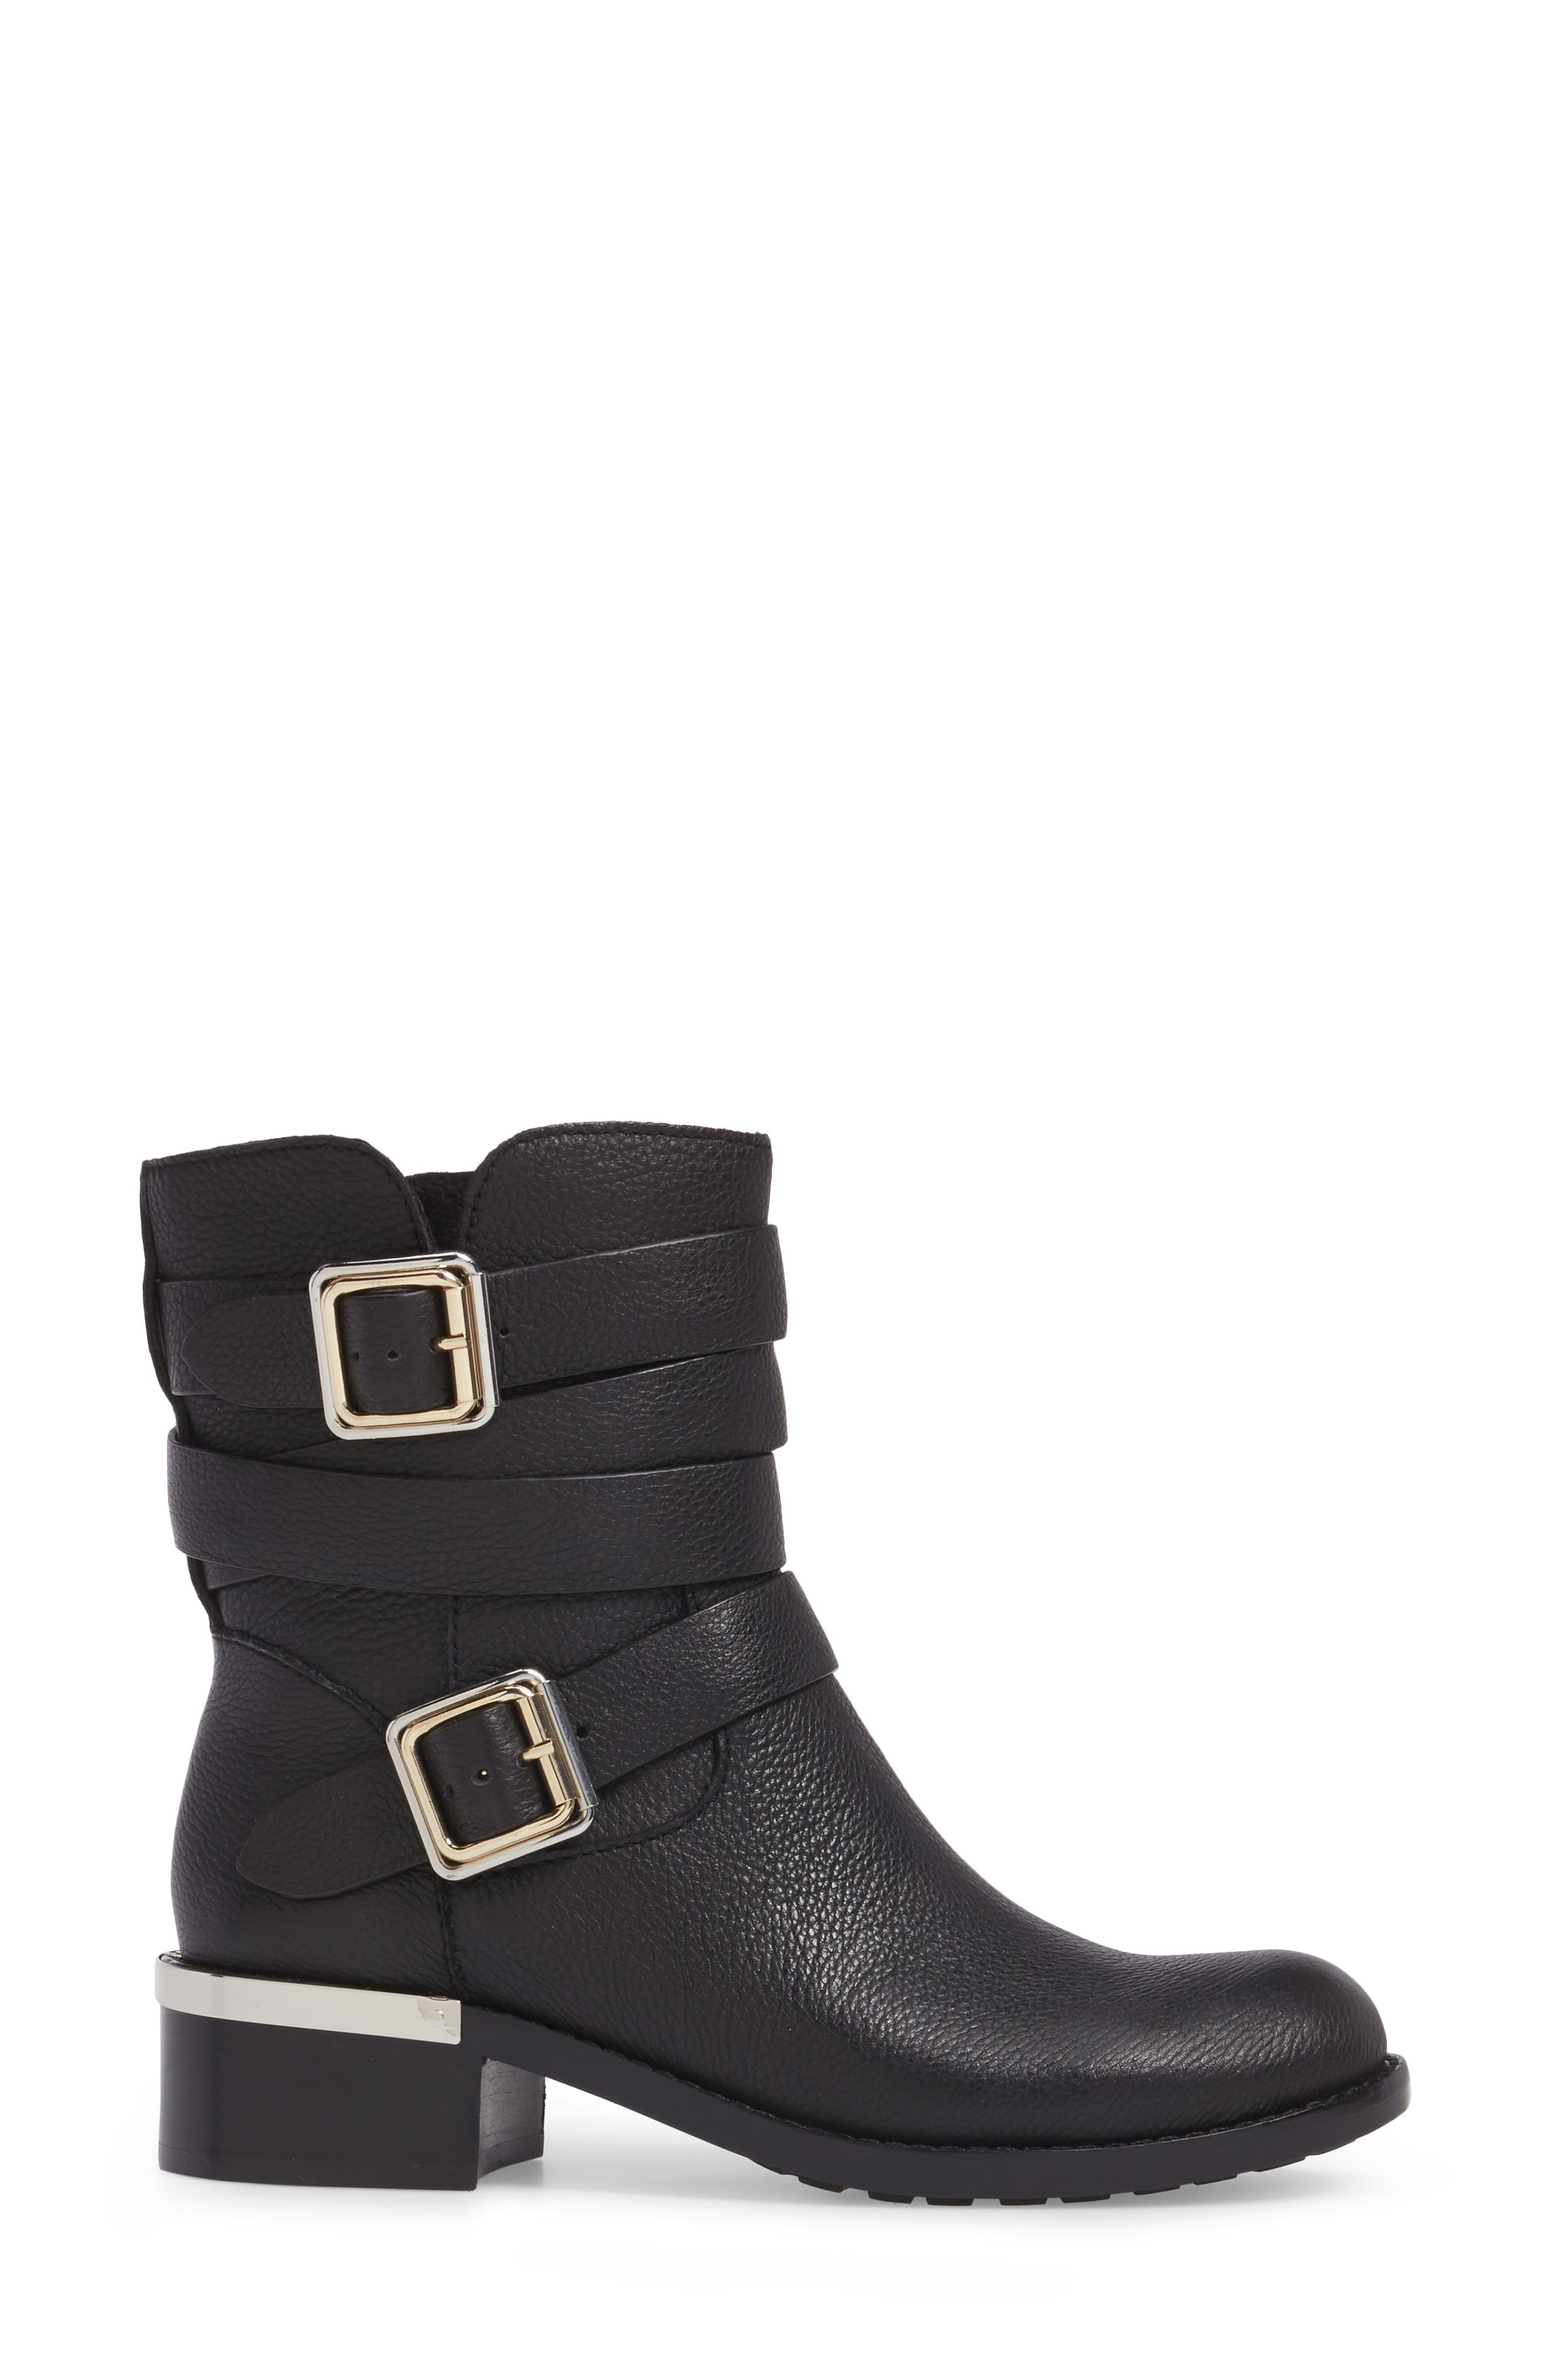 Webey Boot,                             Alternate thumbnail 3, color,                             Black Leather